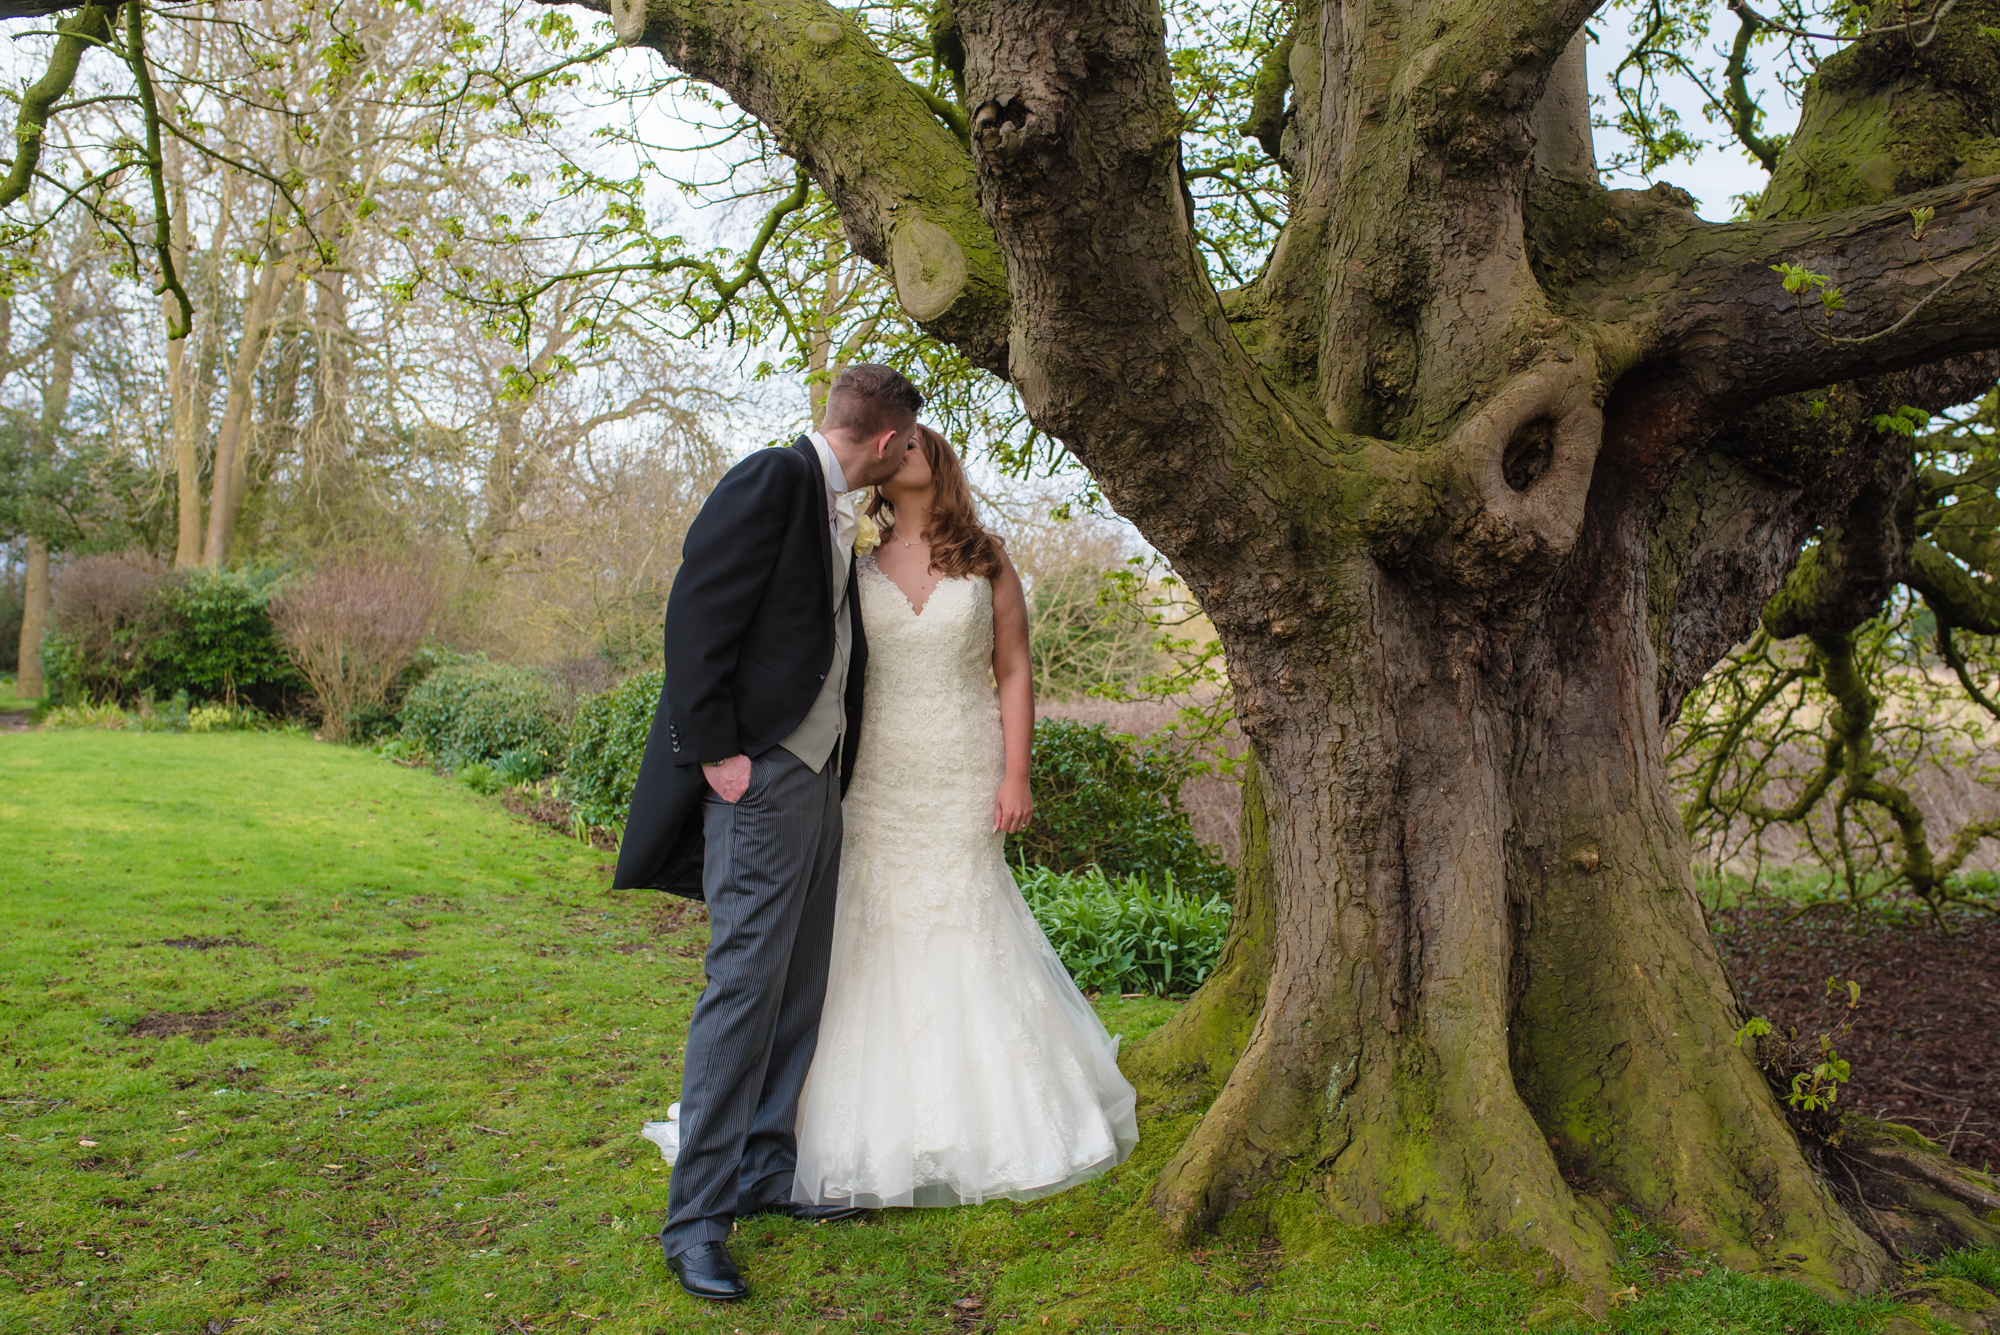 Bride and groom share a kiss under a tree at crabwall manor.